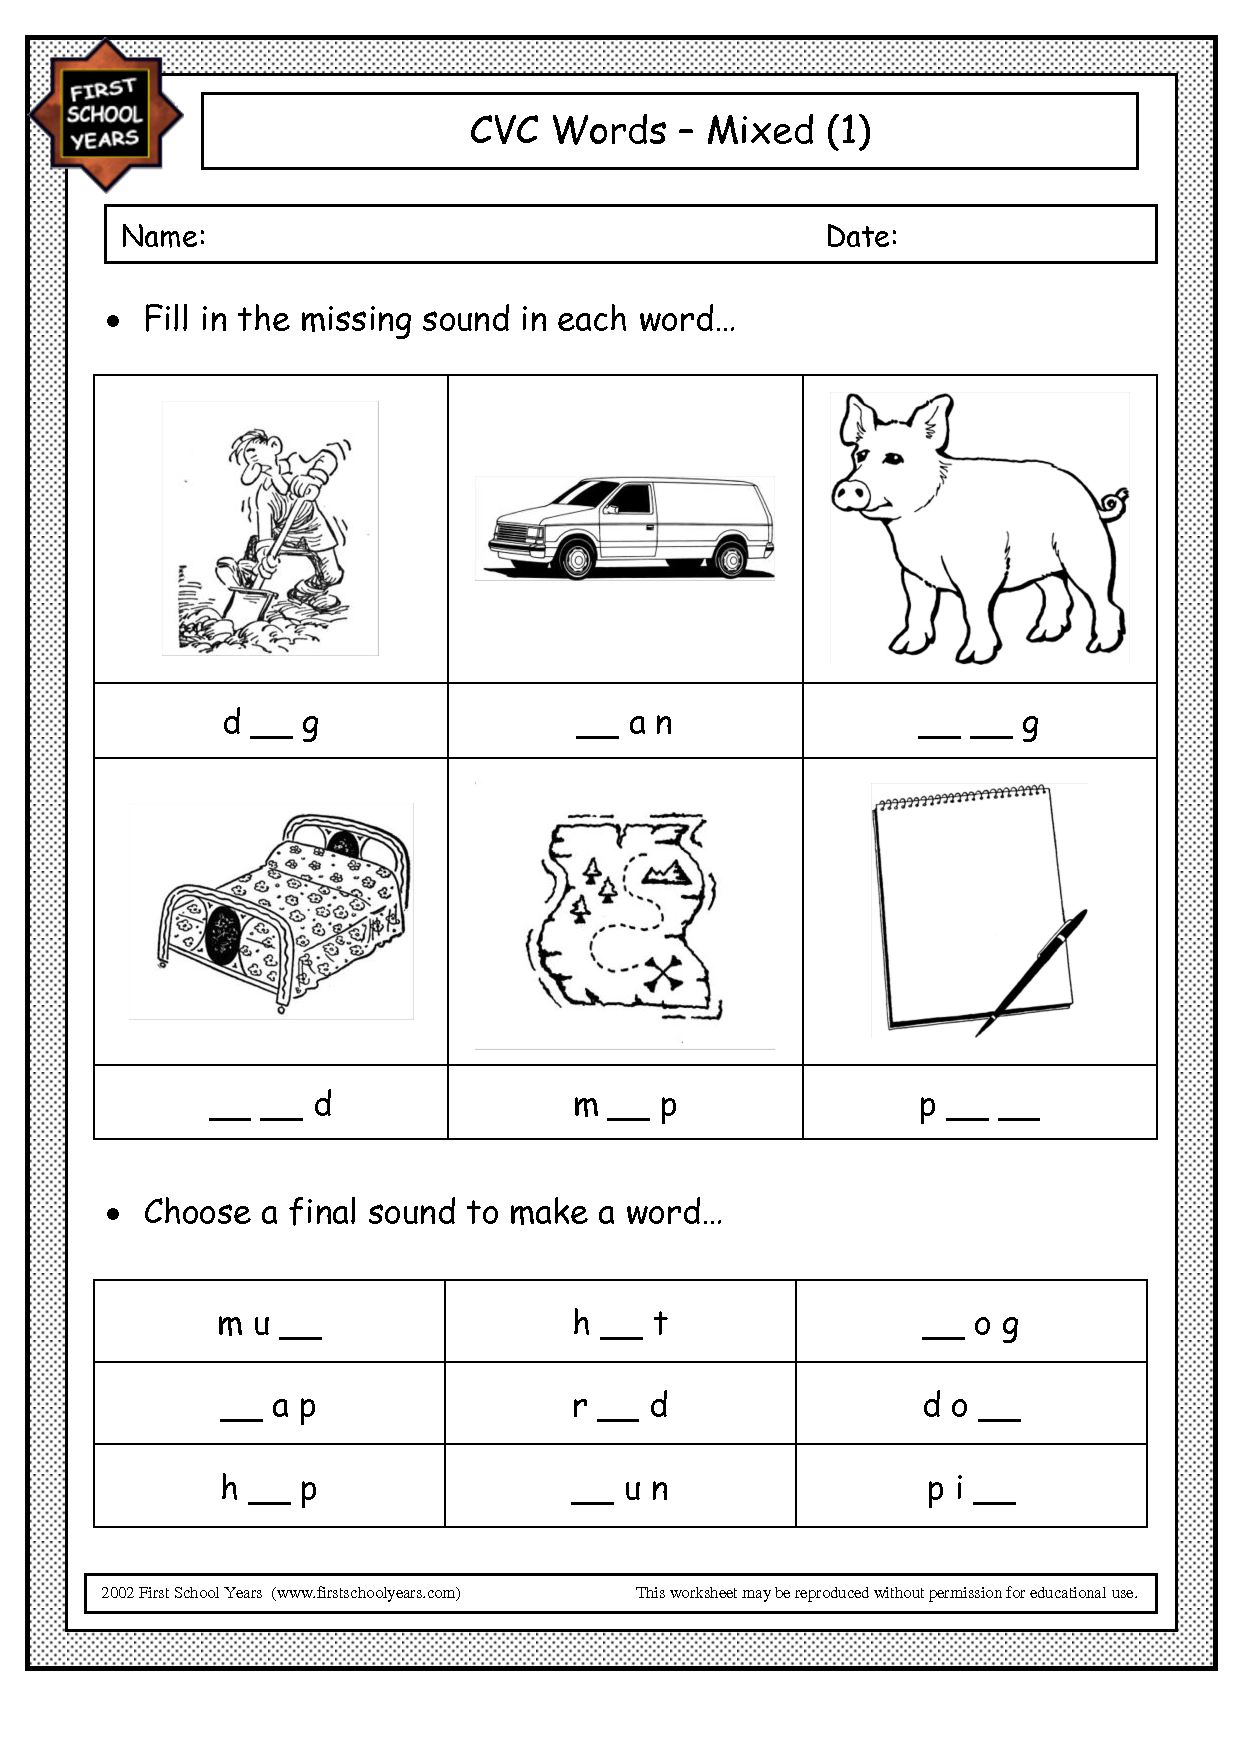 16 Best Images Of Cvc Worksheet Printout